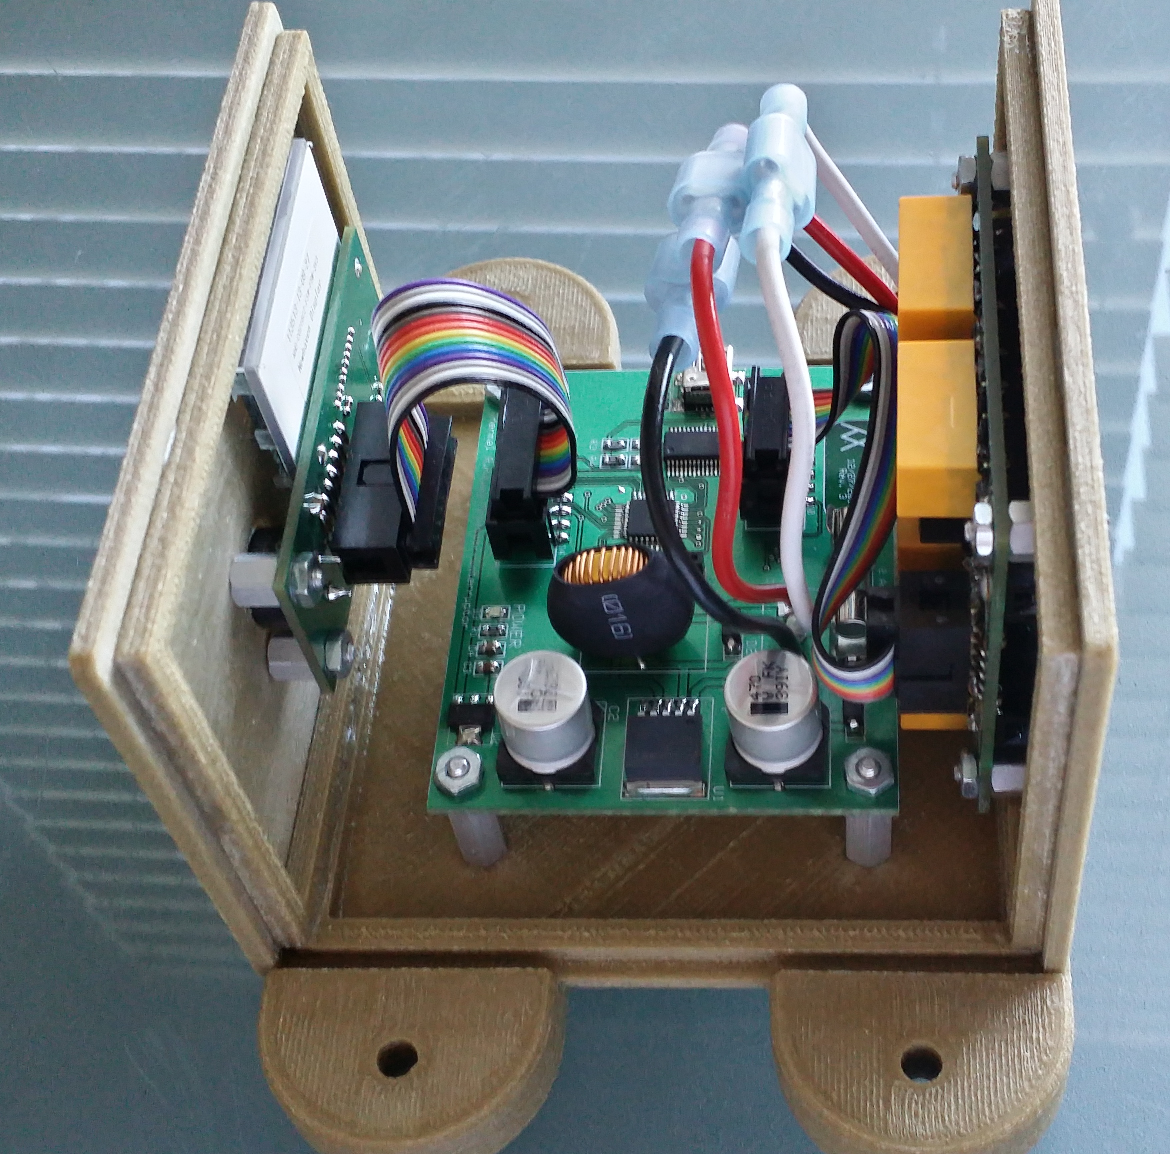 Assembled Device With Top Removed